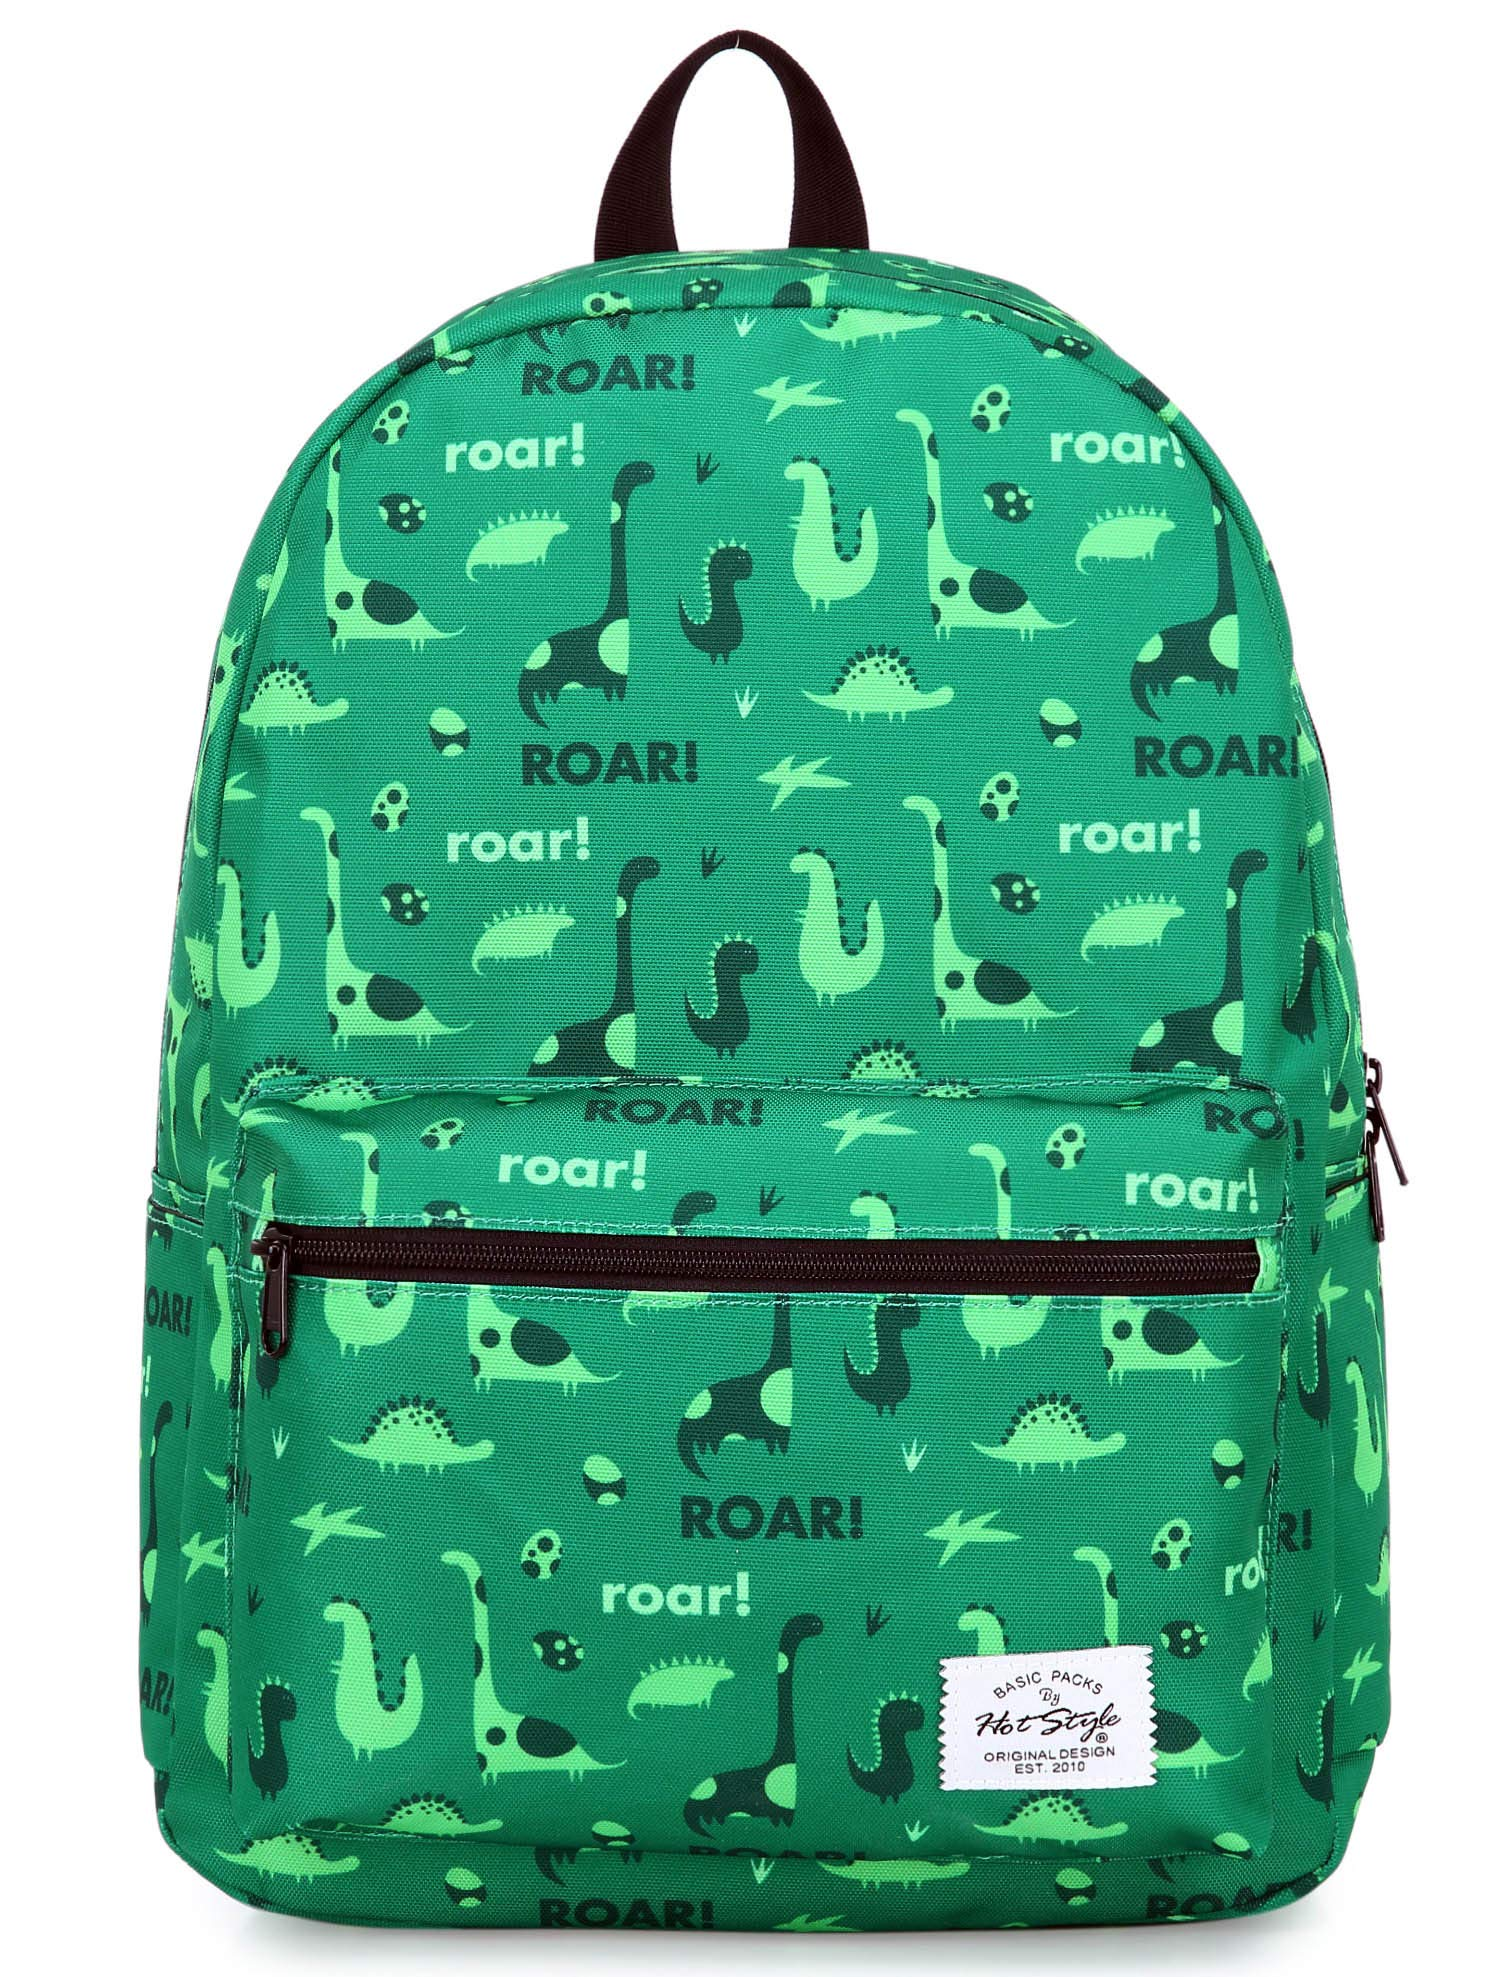 hotstyle TRENDYMAX Backpack Cute for School | 16''x12''x6'' | Holds 15.4-inch Laptop | Dinosaurs, Green by hotstyle (Image #2)